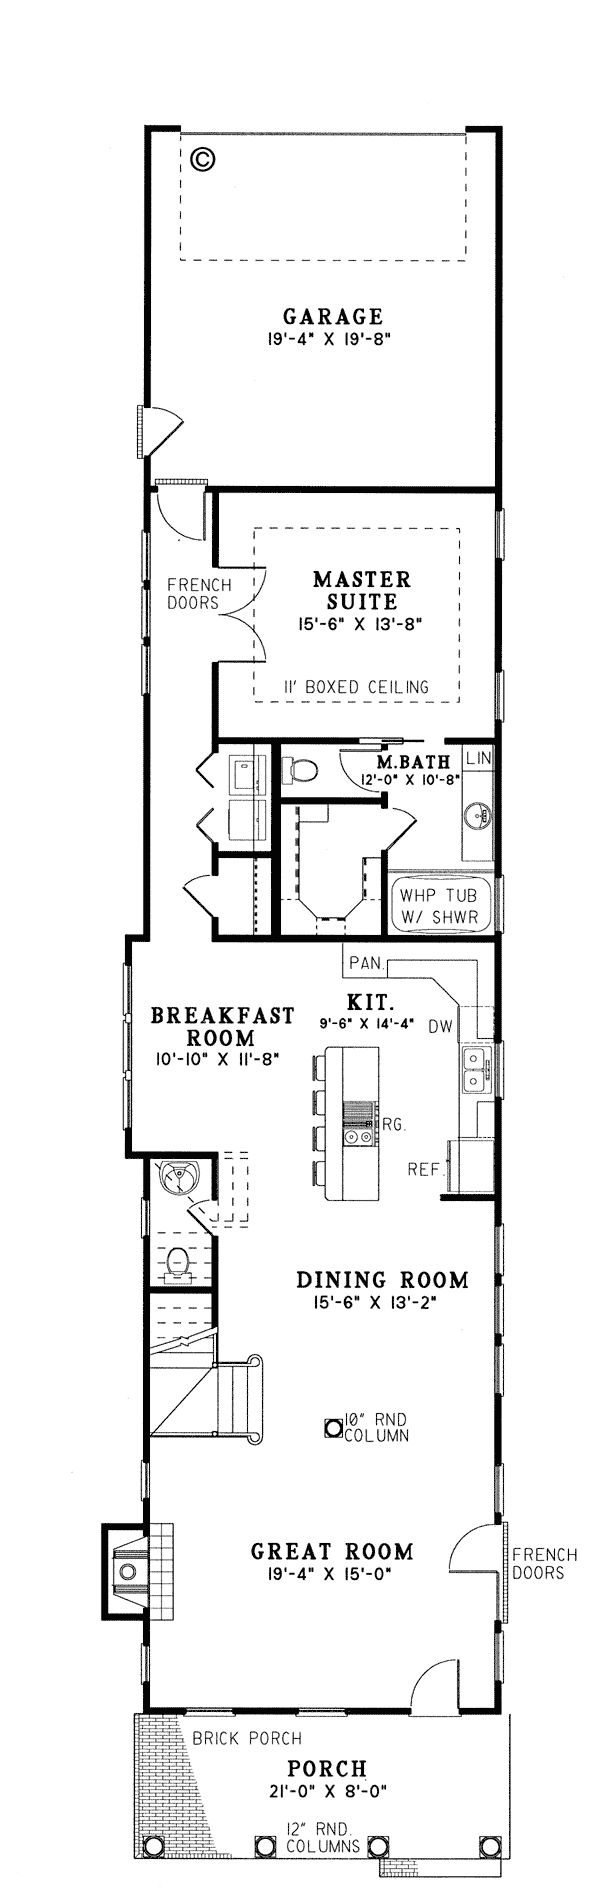 25 best ideas about narrow house plans on pinterest narrow lot house plans shotgun house and - Narrow house plans for narrow lots pict ...